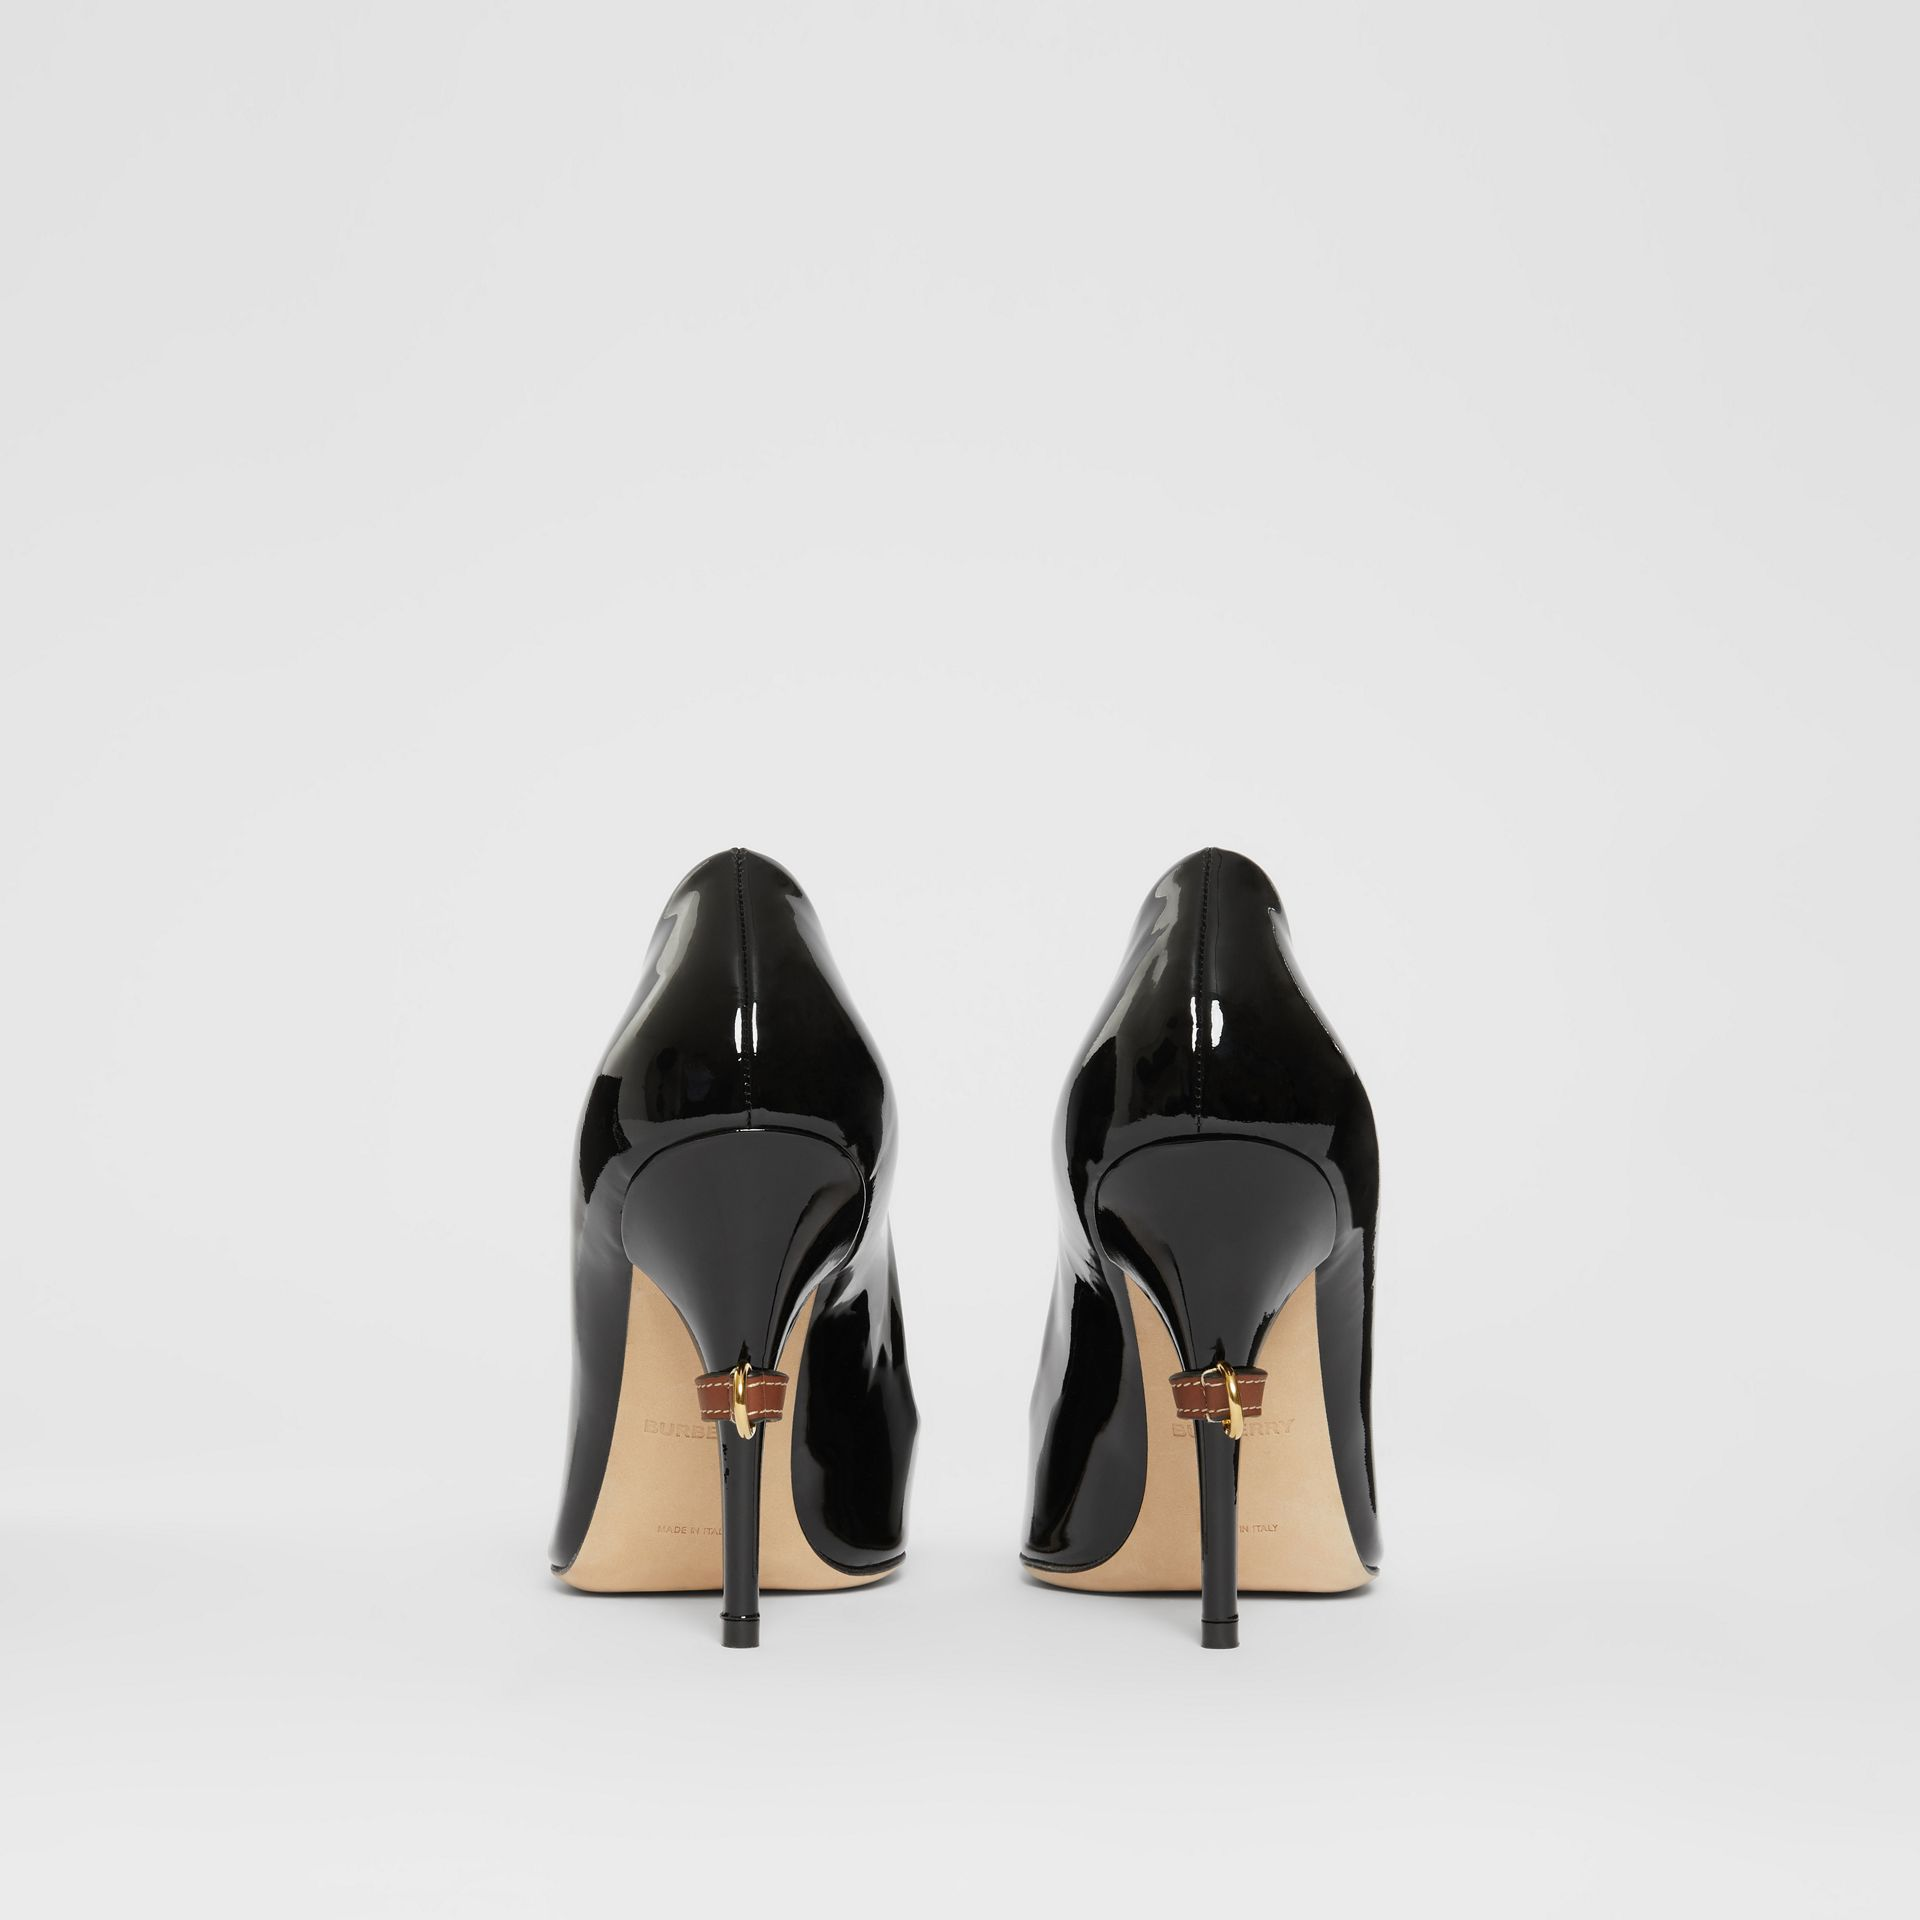 D-ring Detail Patent Leather Square-toe Pumps in Black - Women | Burberry Canada - gallery image 4